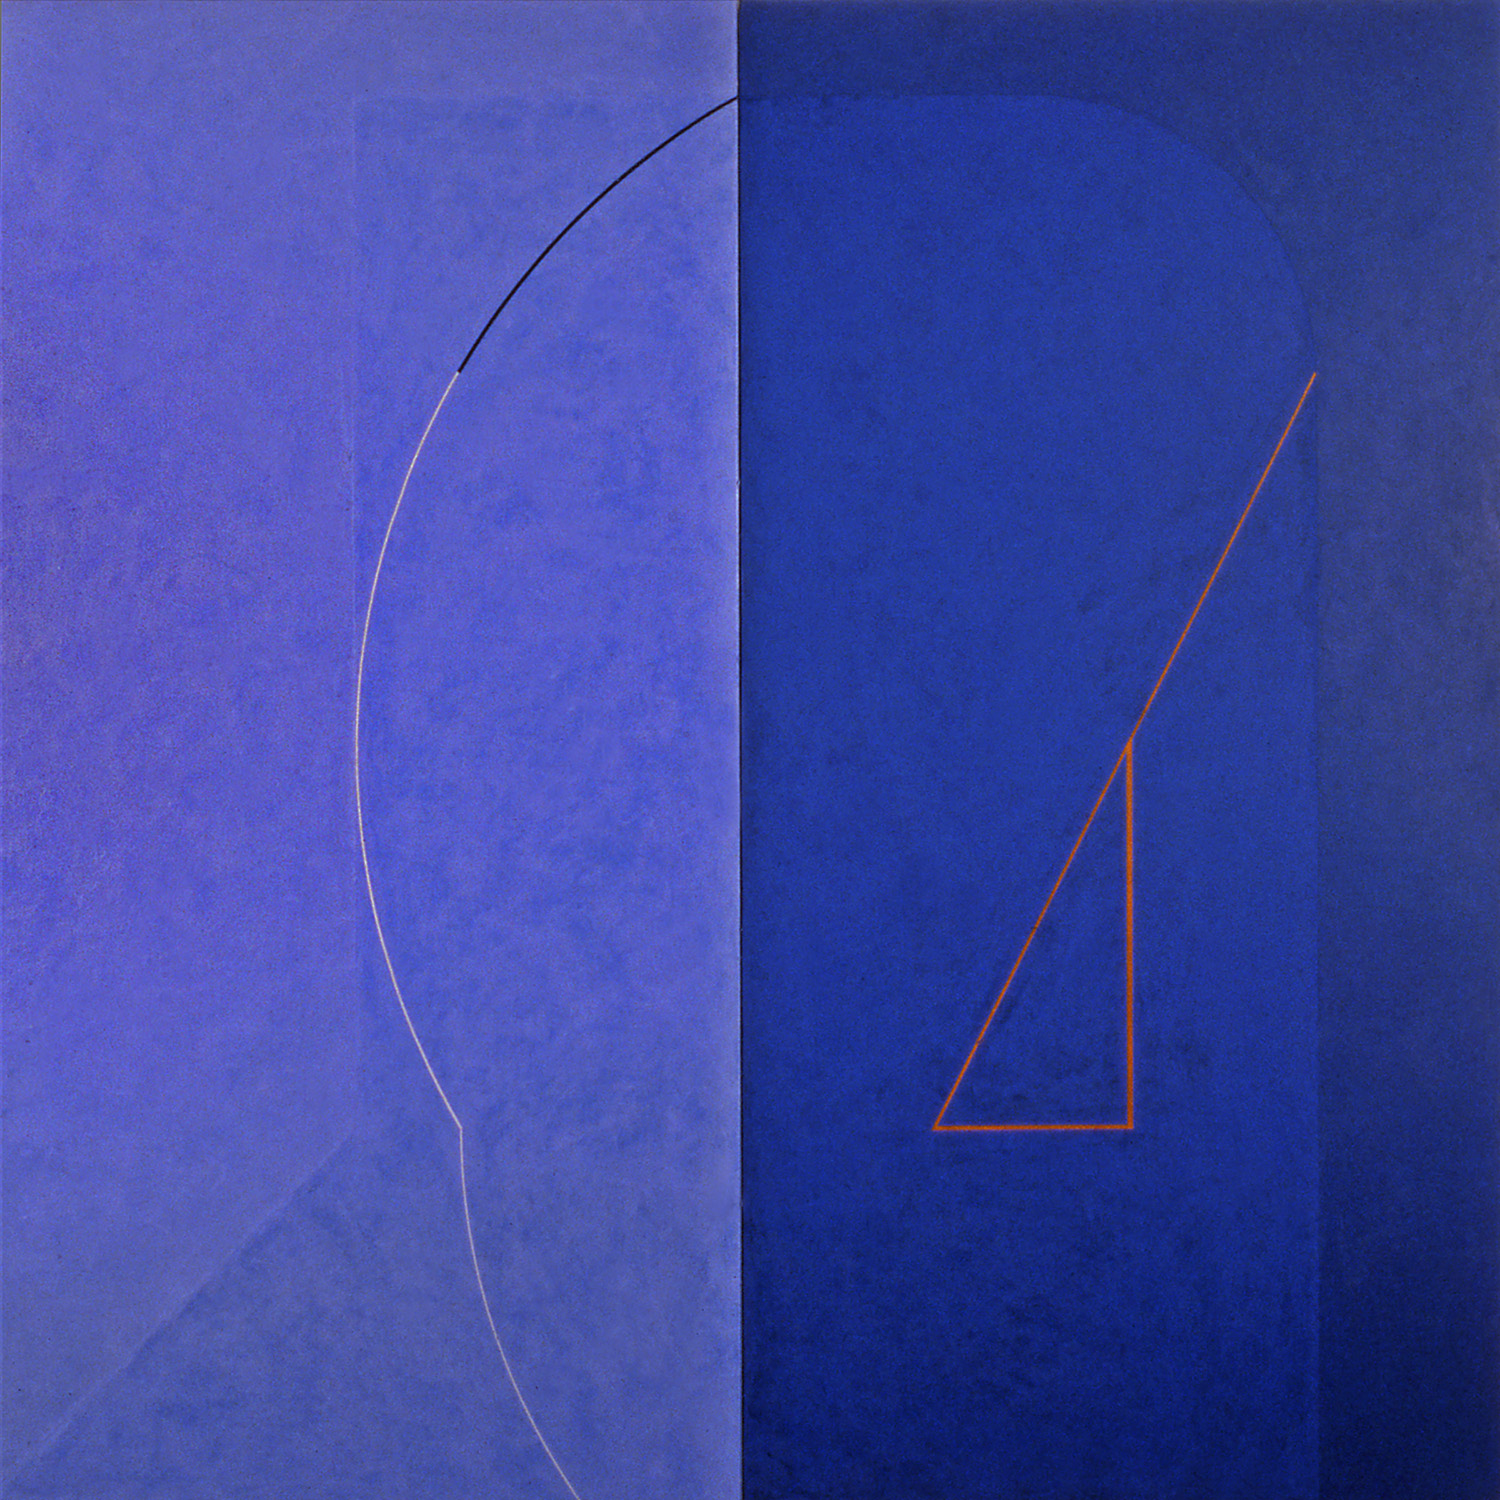 Janus VIII, 1986, Acrylic on canvas over panels, 72 x 72 inches.